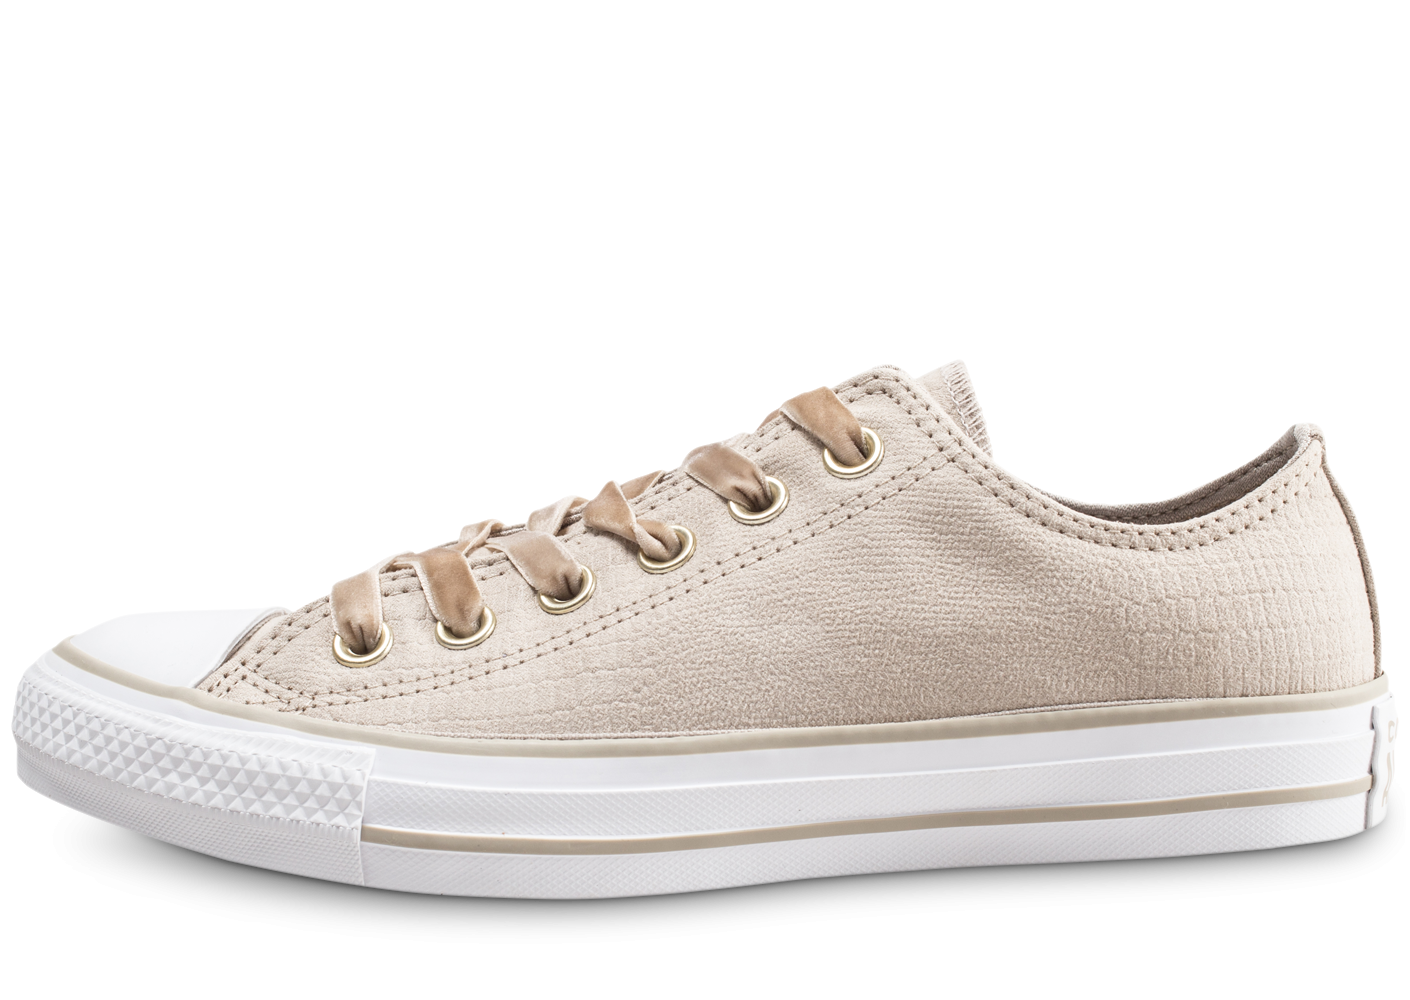 Converse Chuck Taylor All Star Low beige femme